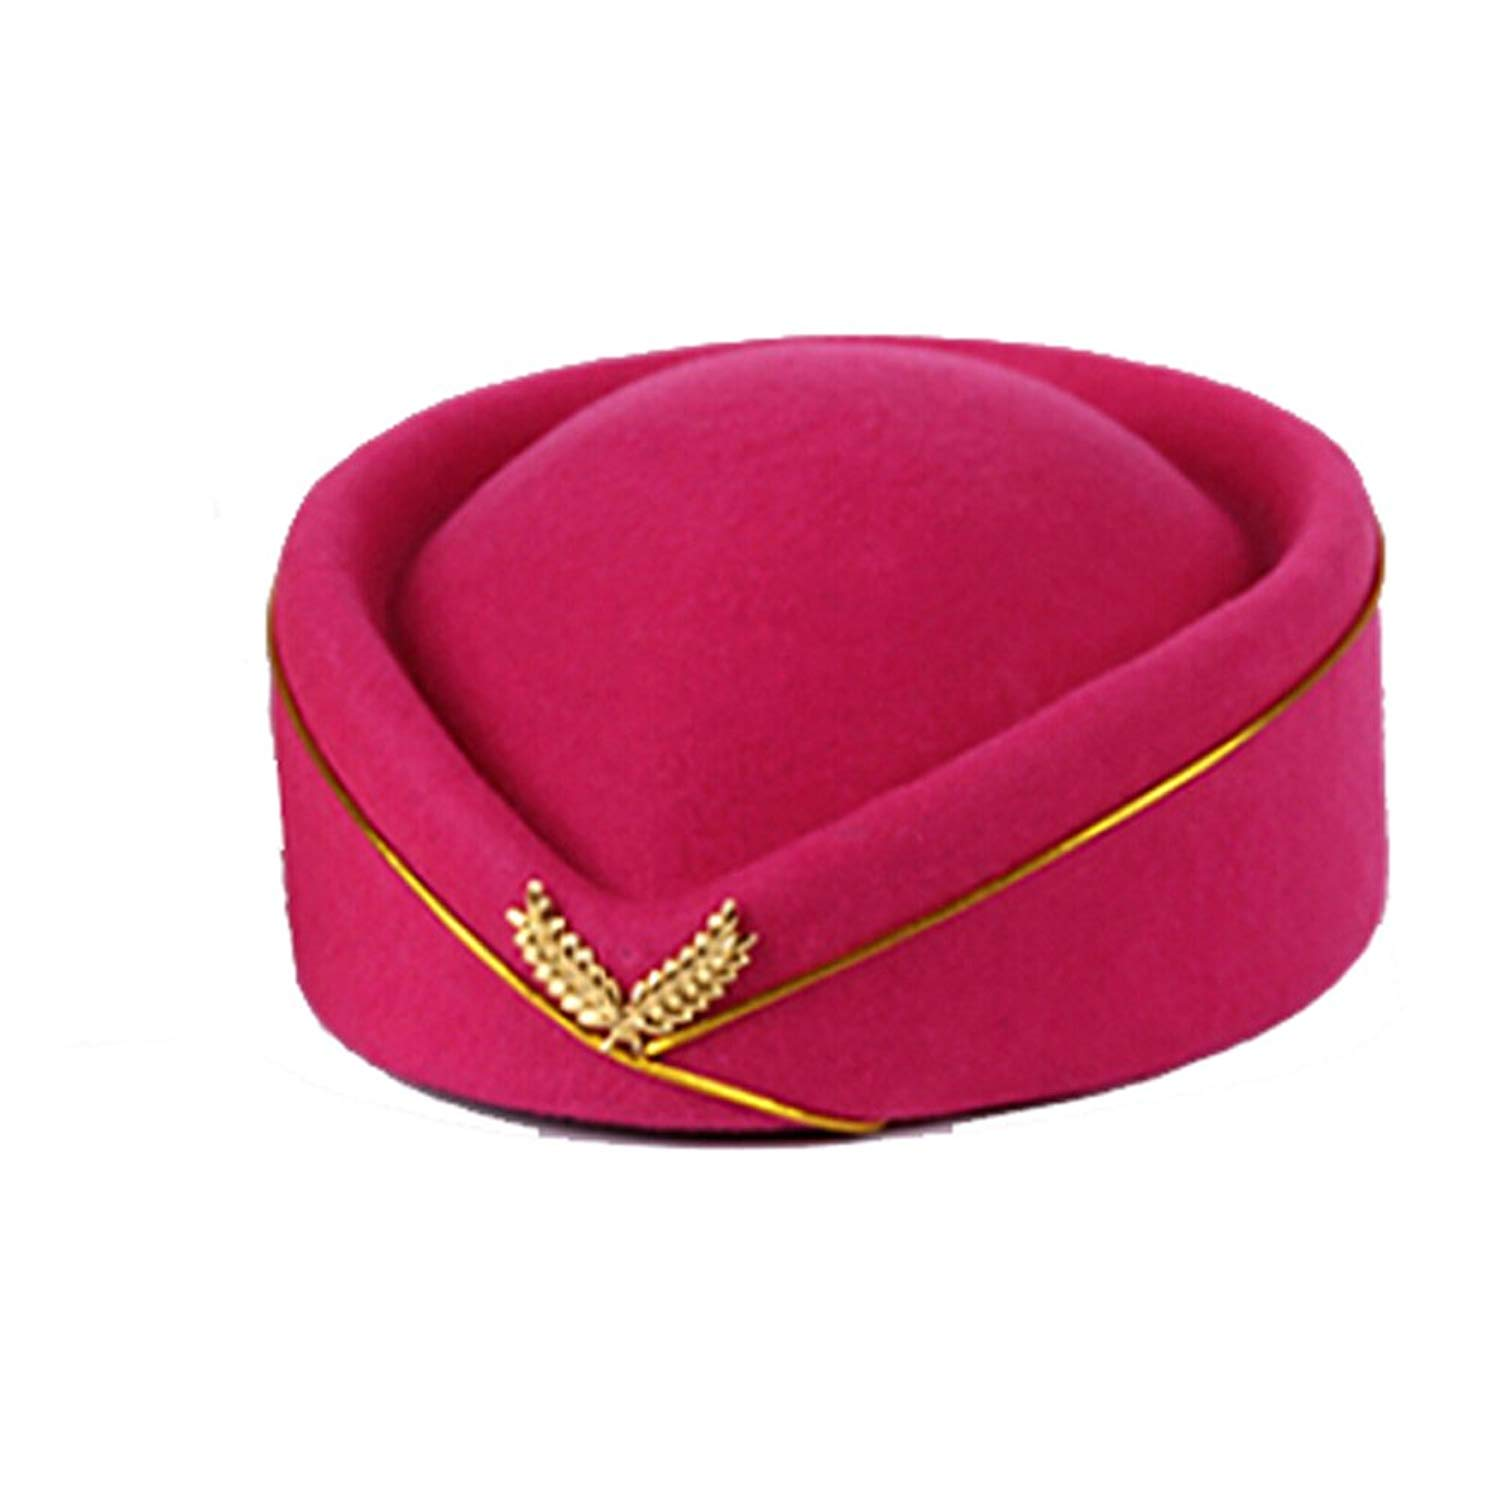 ba4df0b17de Get Quotations · Handmade FADVES Professionals Customized Careeer Stewardess  Hat Etiquette Cap Women